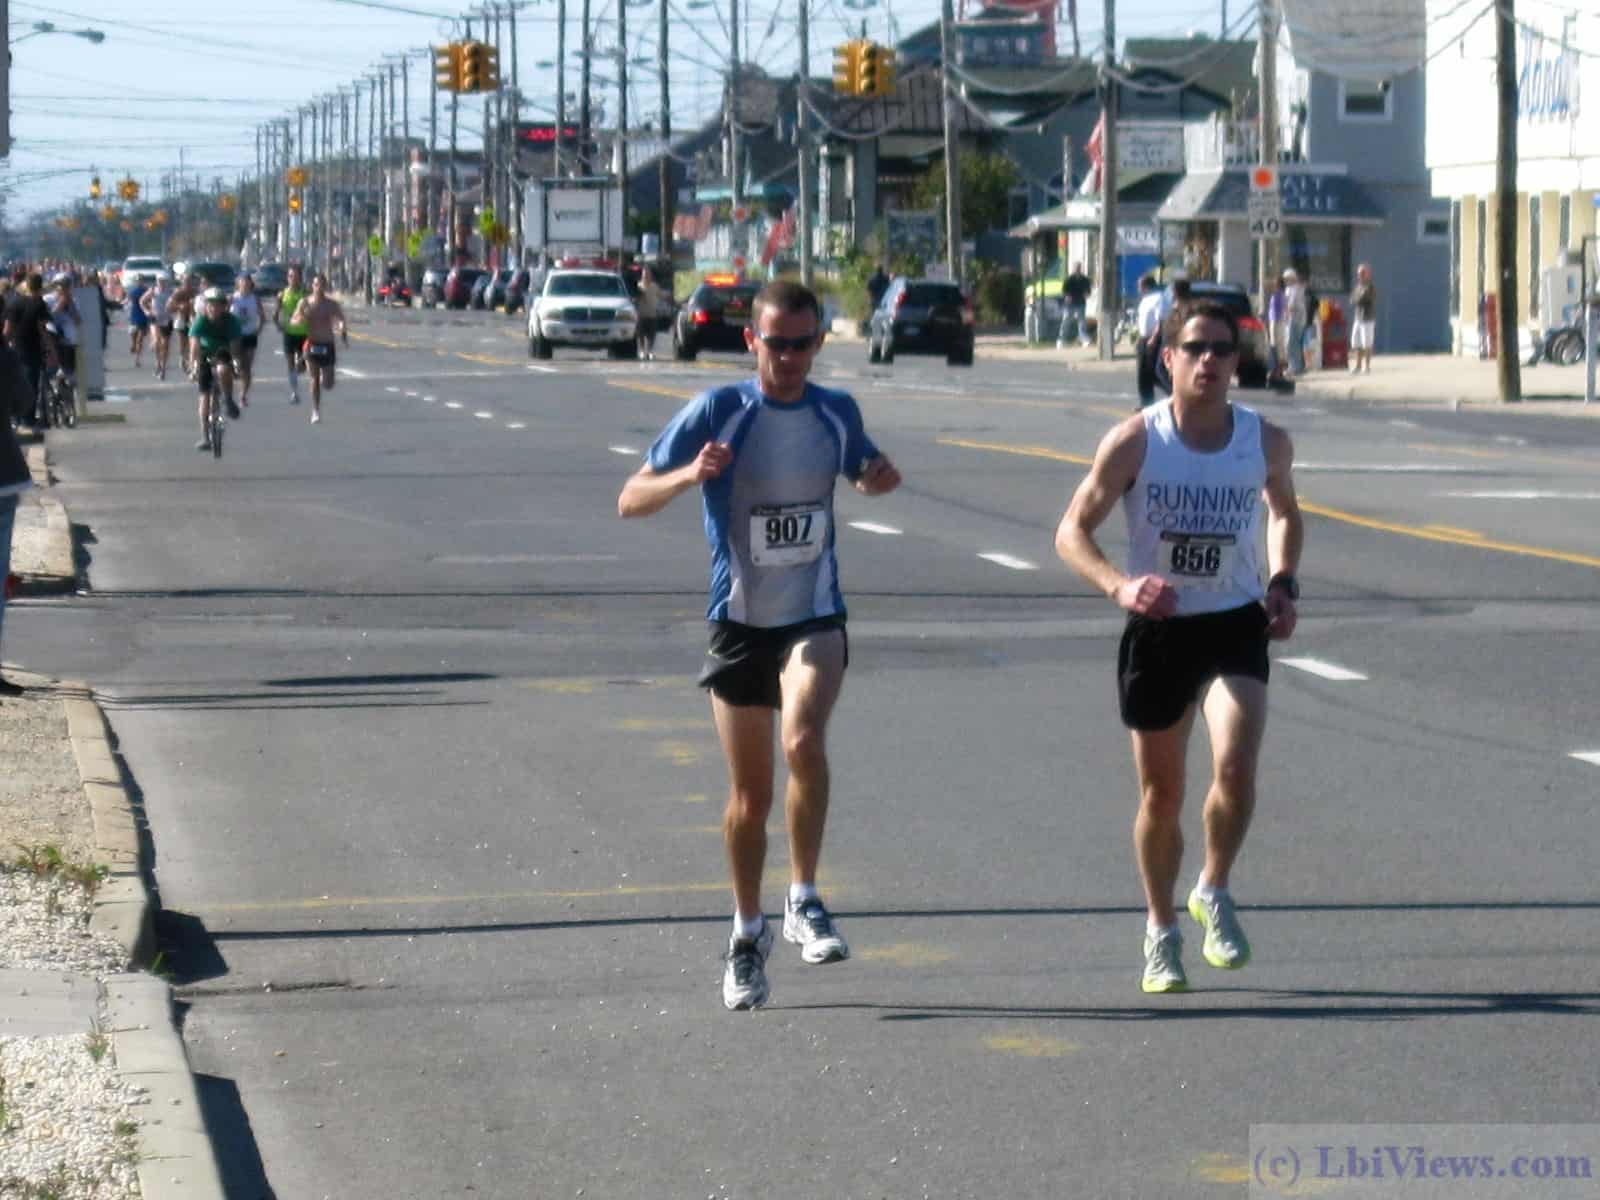 Runners competing in the Long Beach Island 18 Mile Run